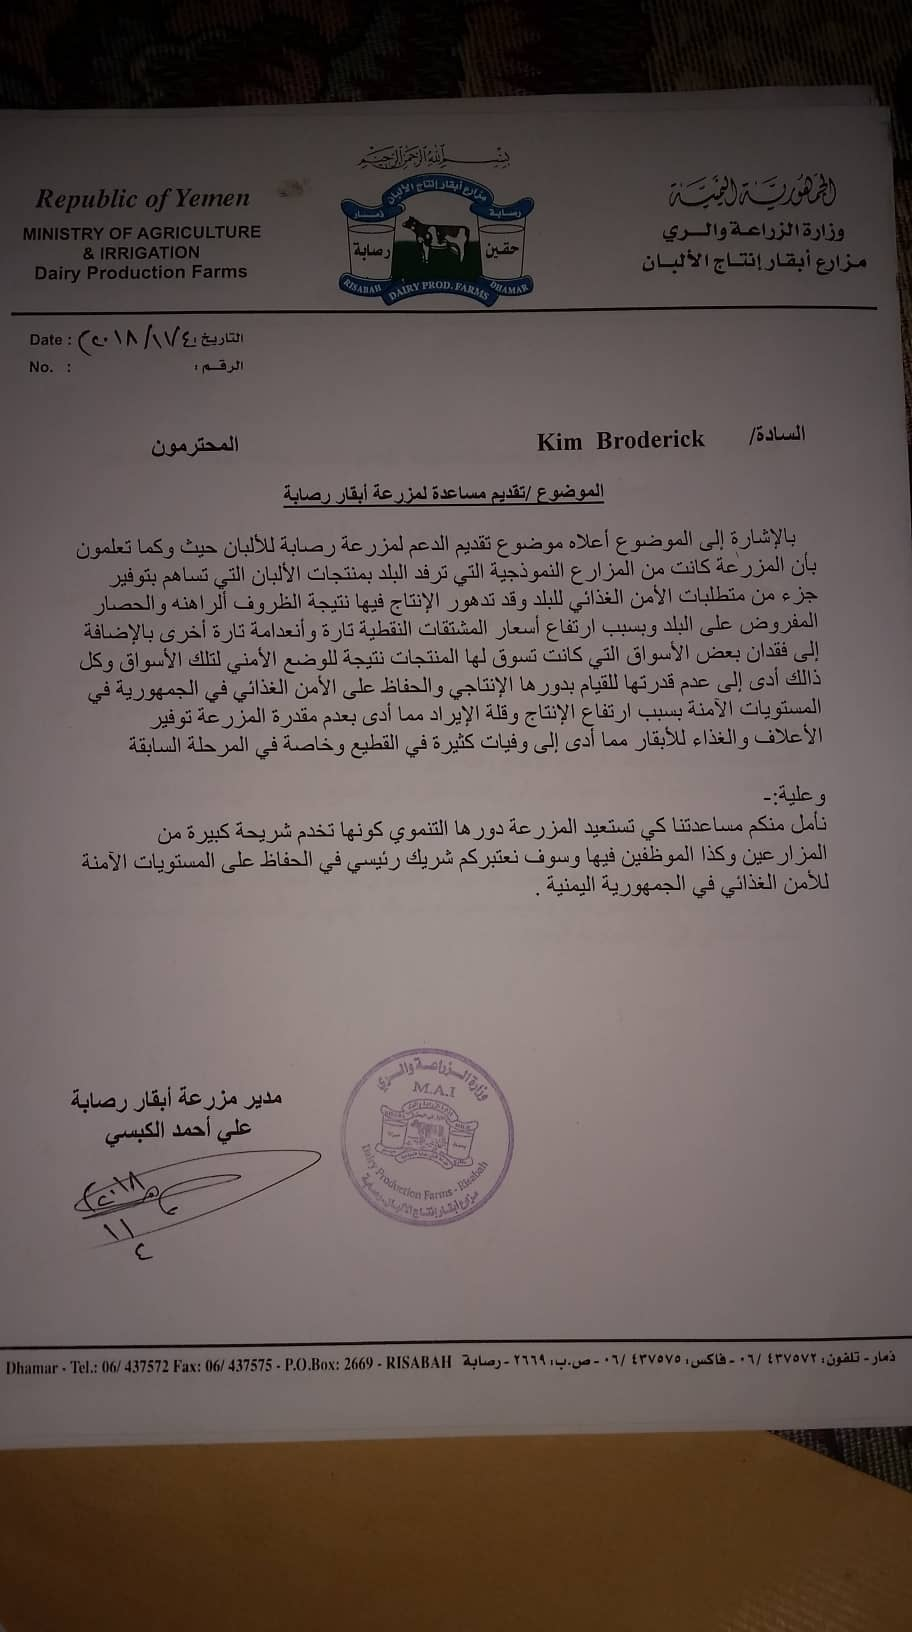 Dhamar rosabah letter of request for assistance in Arabic 4 Nov 2018 from the management farm to OWAP-AR   Hisham.jpg